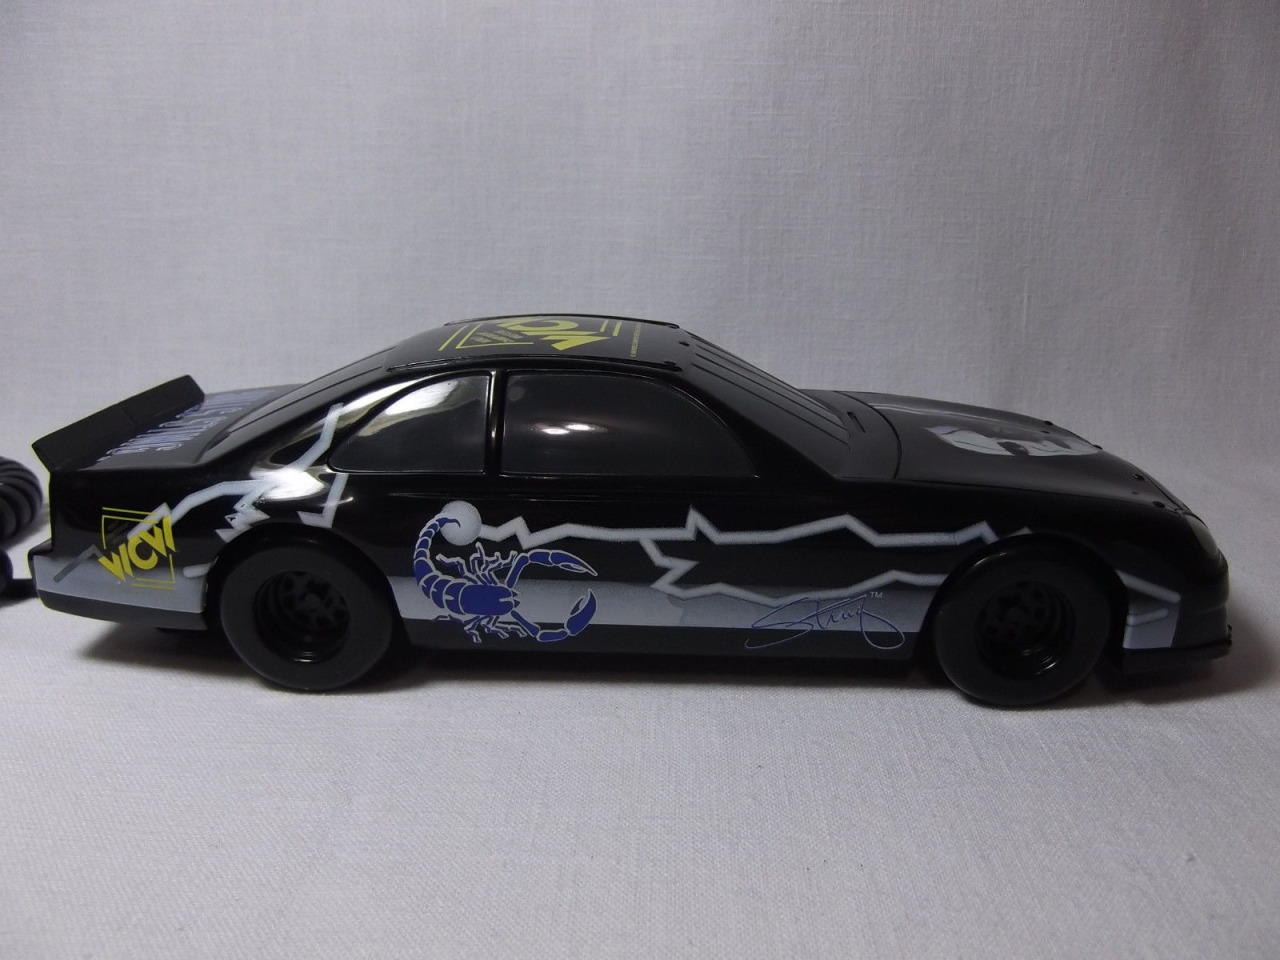 WCW Sting race car telephone 2